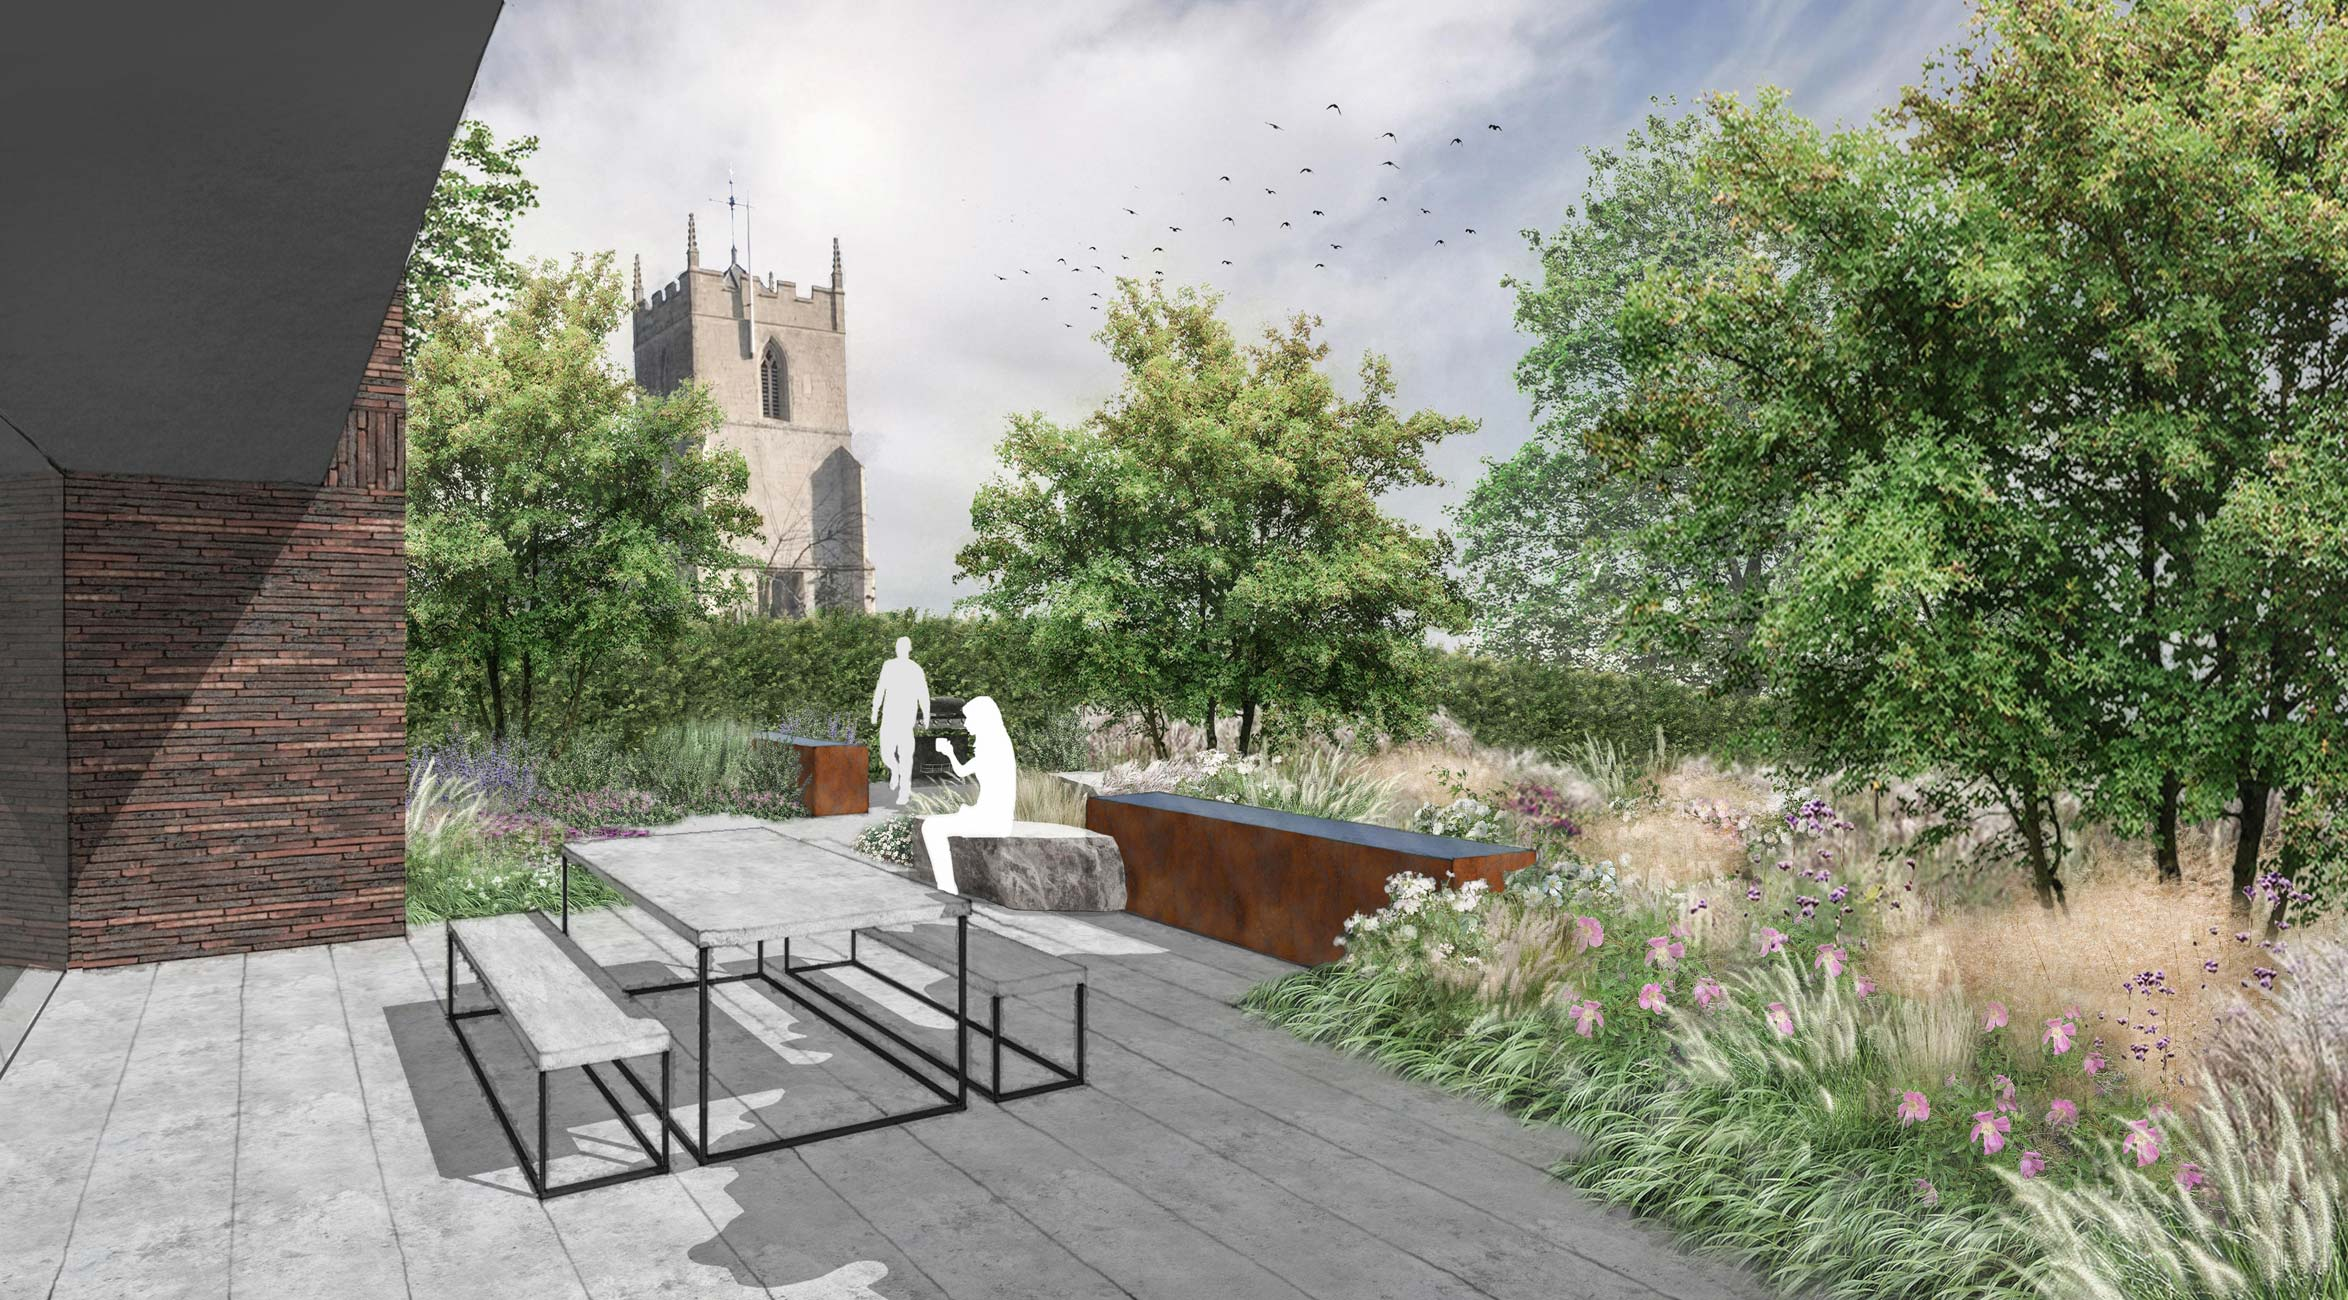 Colm Joseph Gardens - cambridgeshire garden main terrace limestone corten water feature rose meadow church view